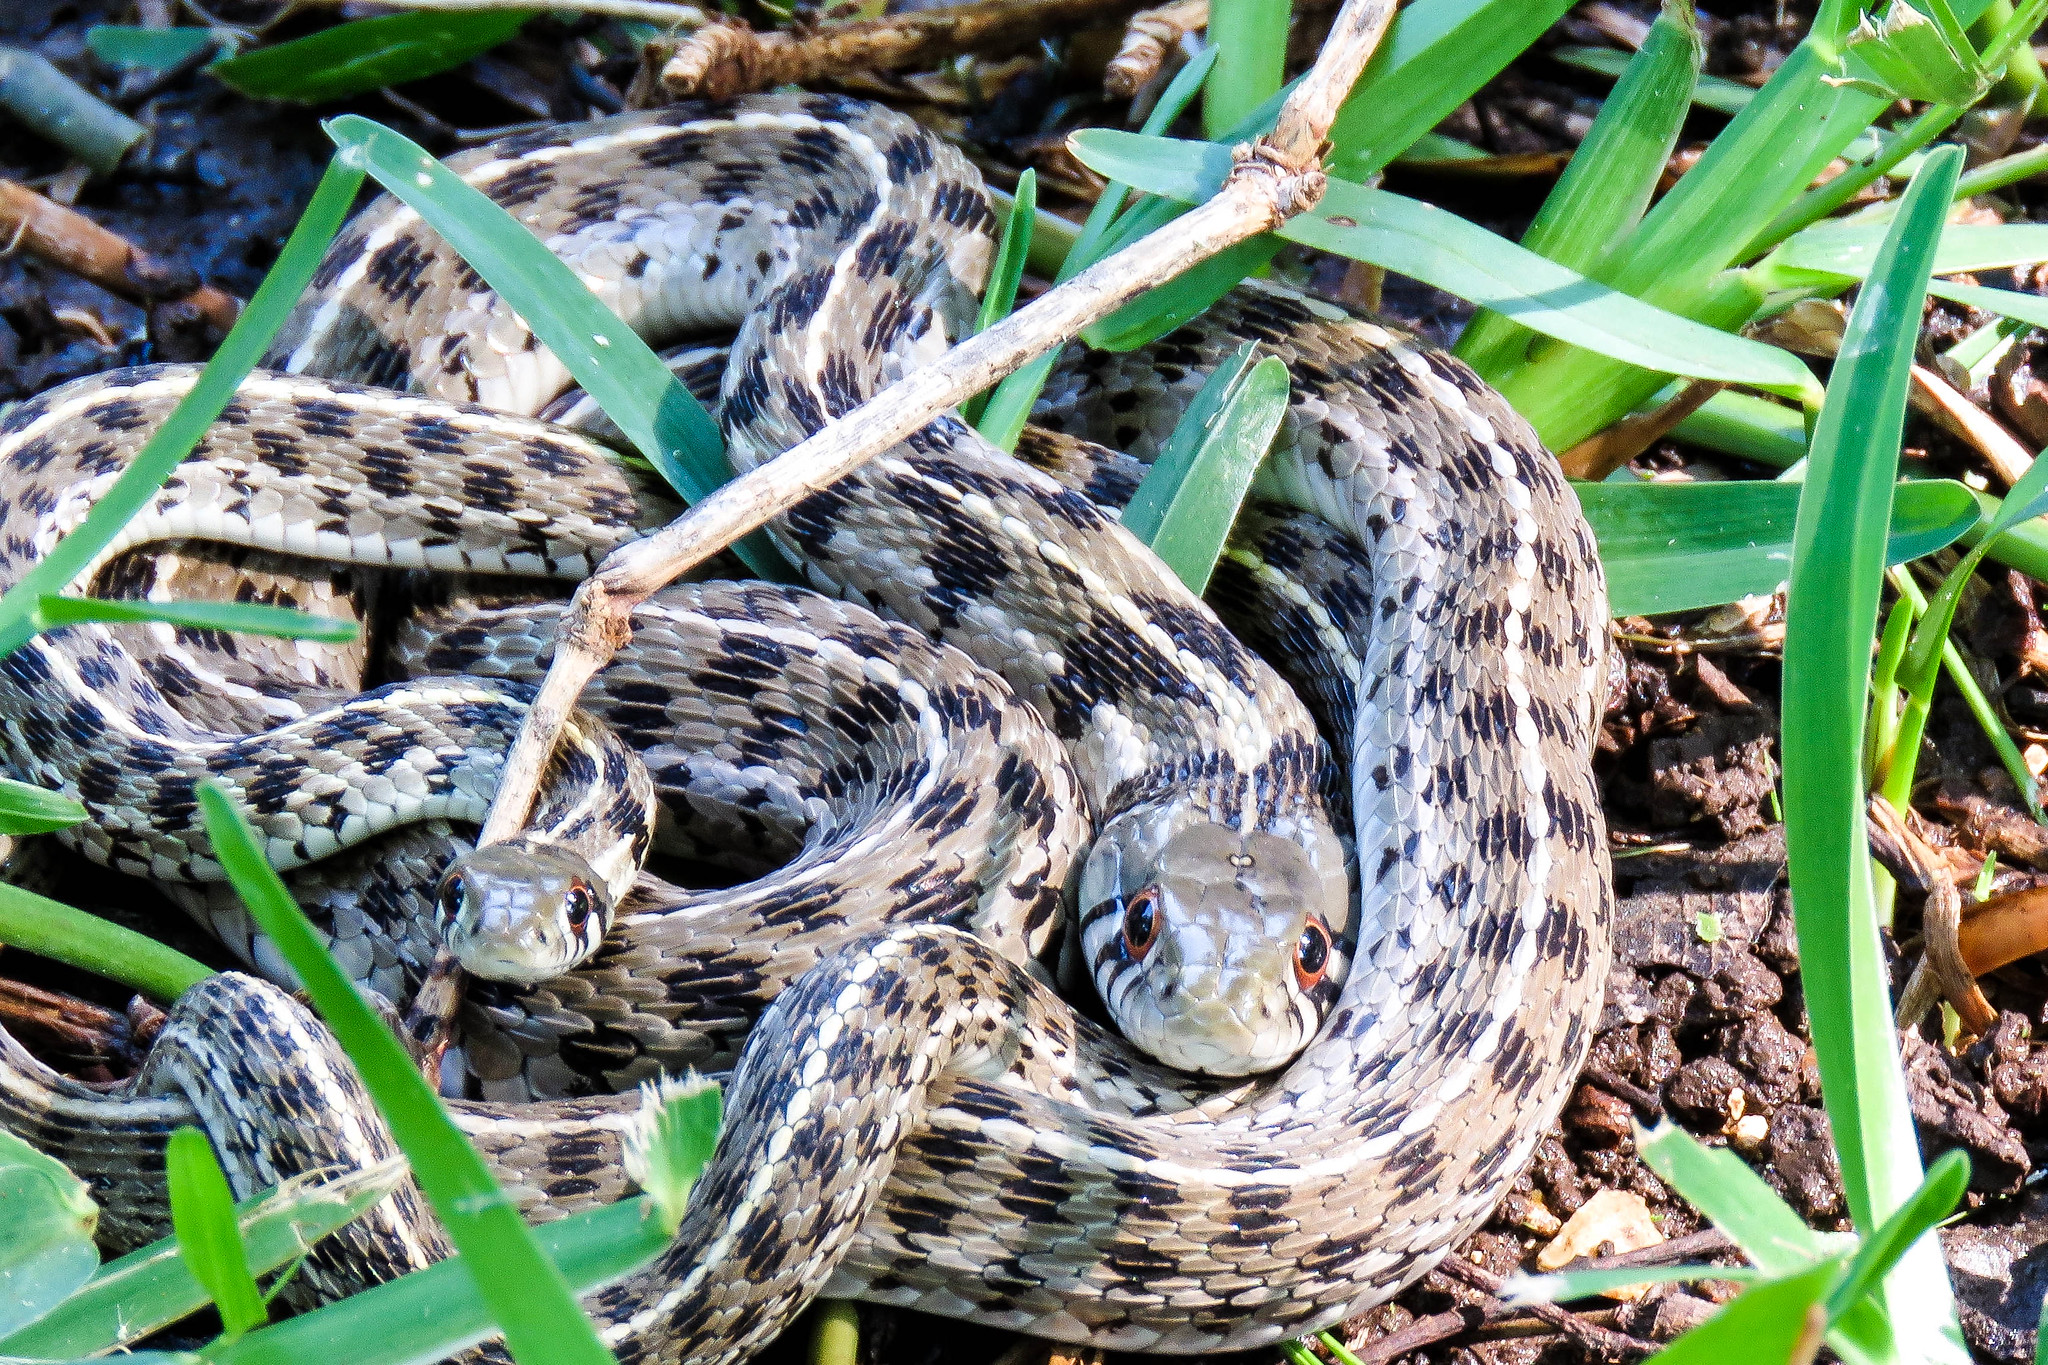 snakes in my yard flickr photo sharing